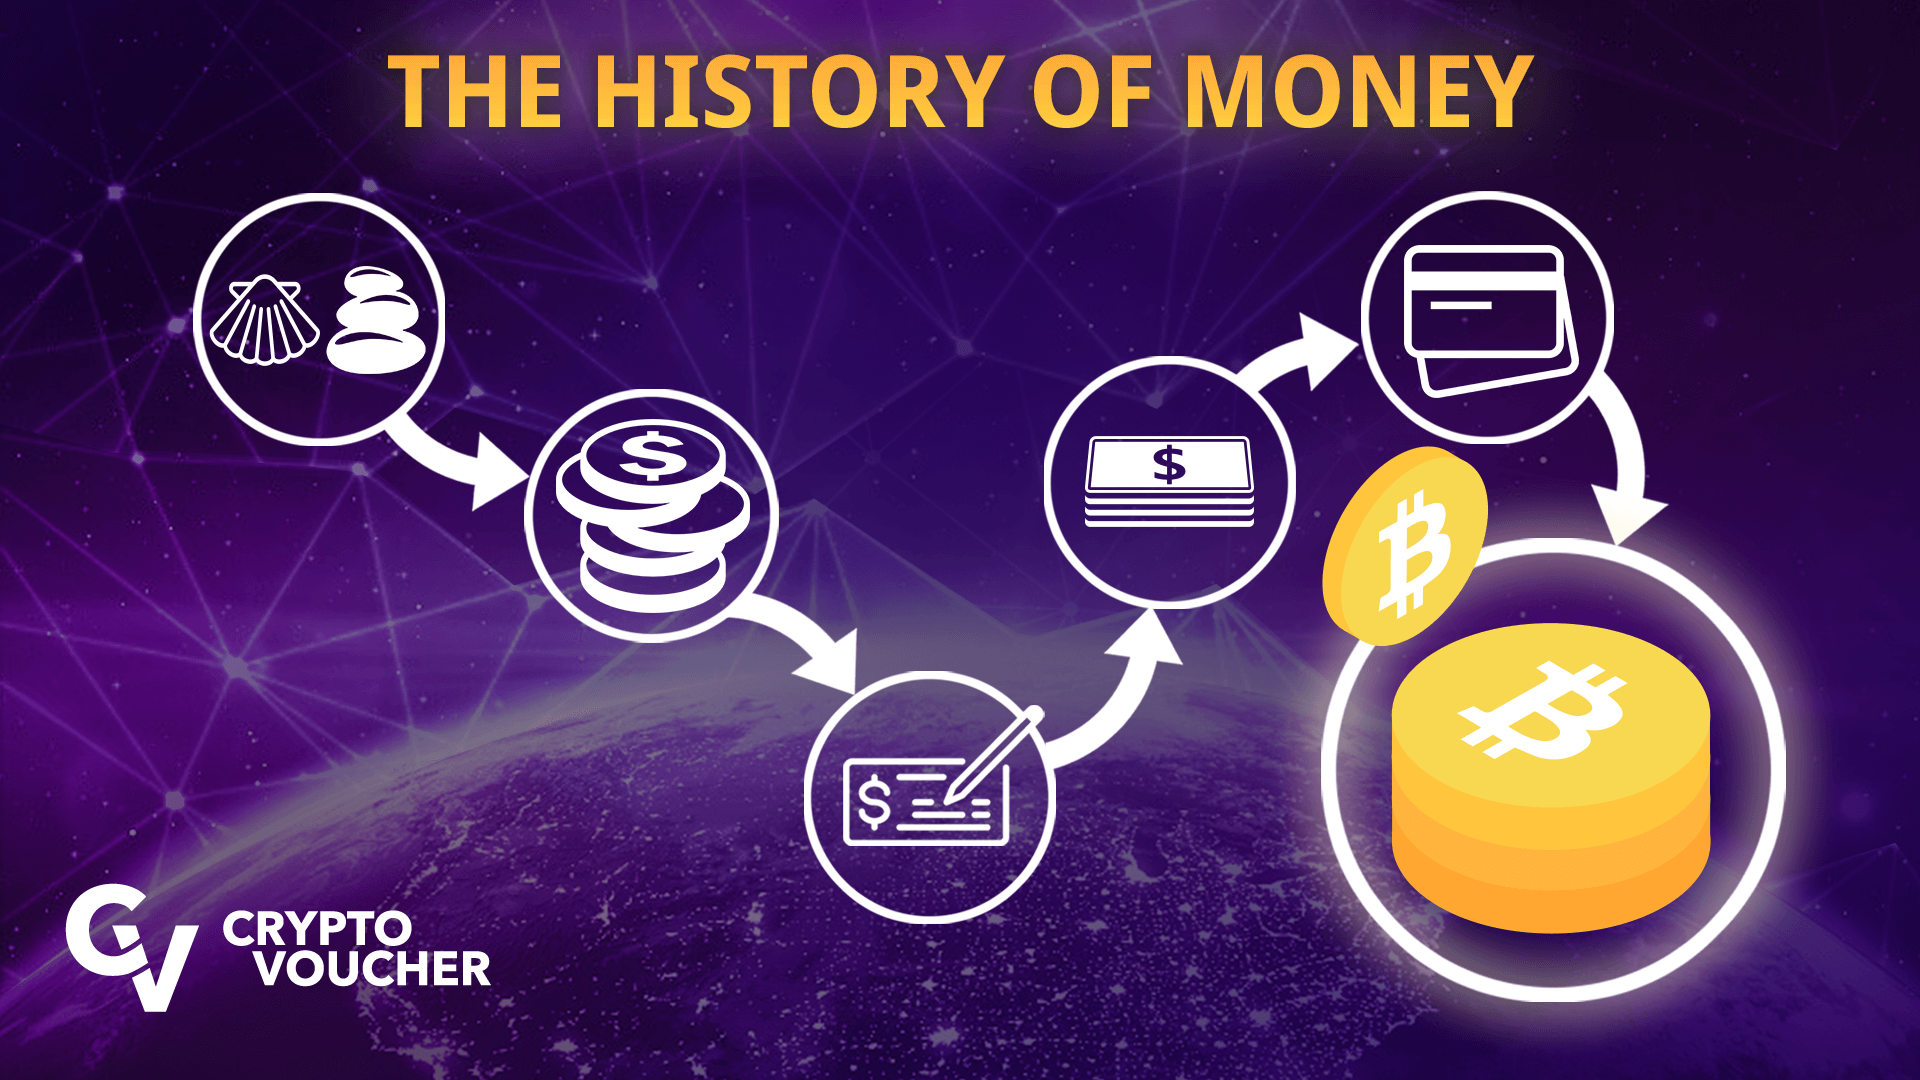 From shells to virtual coin – the history of money